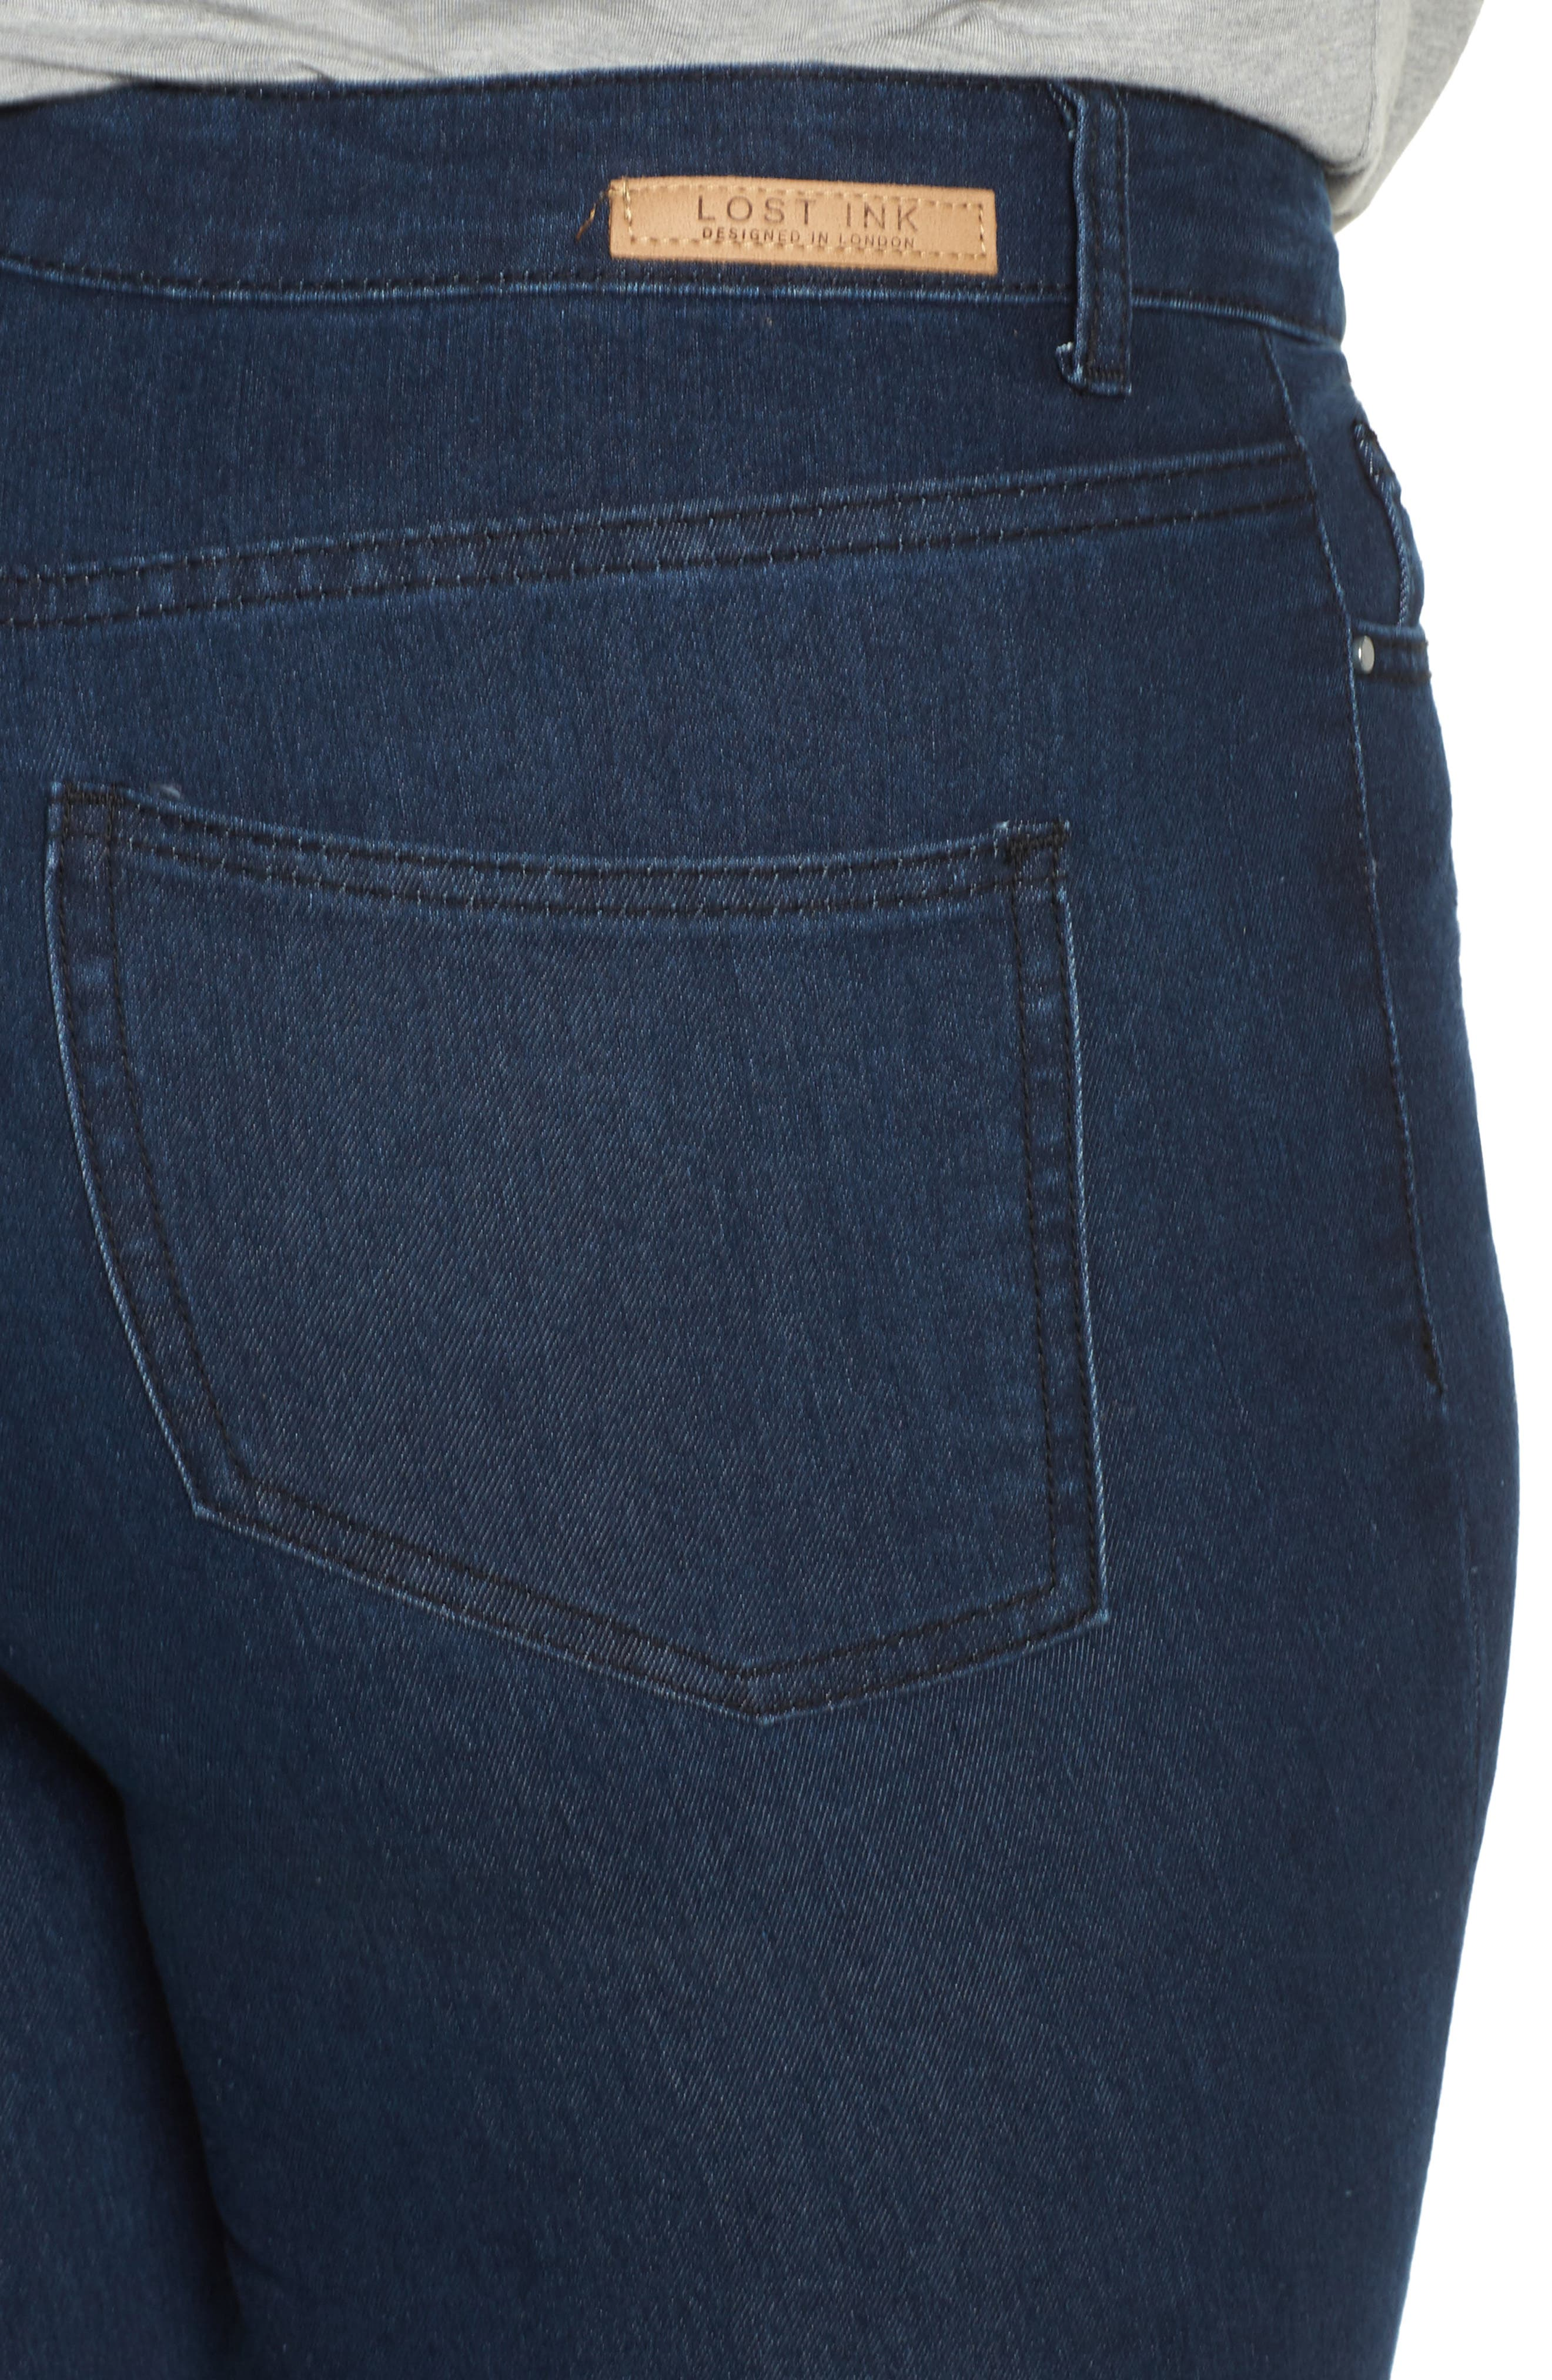 Alternate Image 4  - LOST INK Super High-Waist Skinny Ankle Jeans (Plus Size)